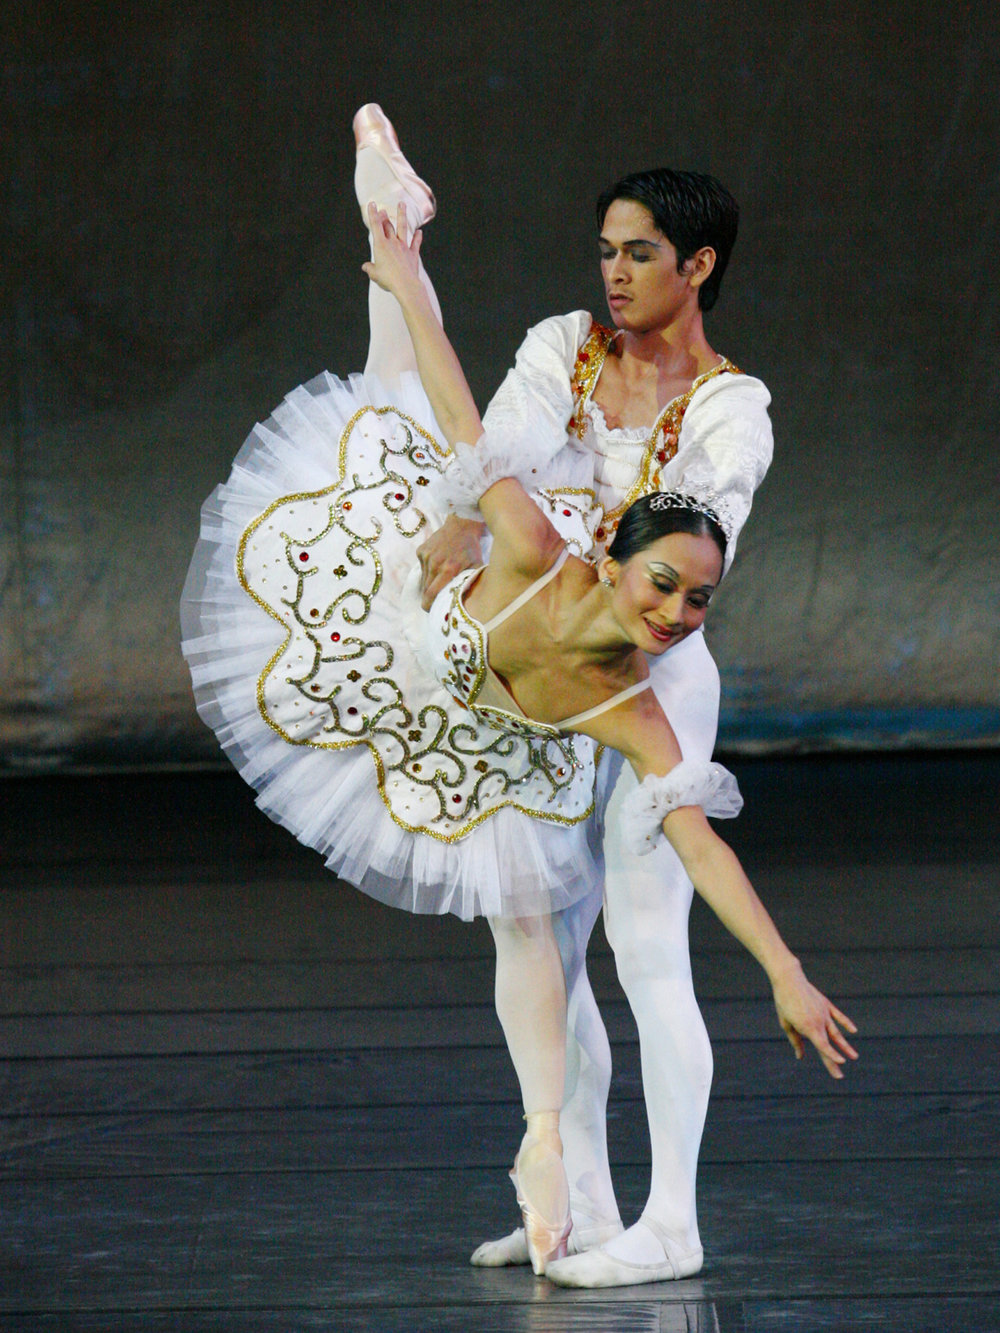 By 2007, Rudy was promoted to soloist. He was among several young danseurs alternating to partner Lisa after Osias Barroso retired. In the photo, the pair is seen dancing  The Nutcracker.  Photo by Ocs Alvarez